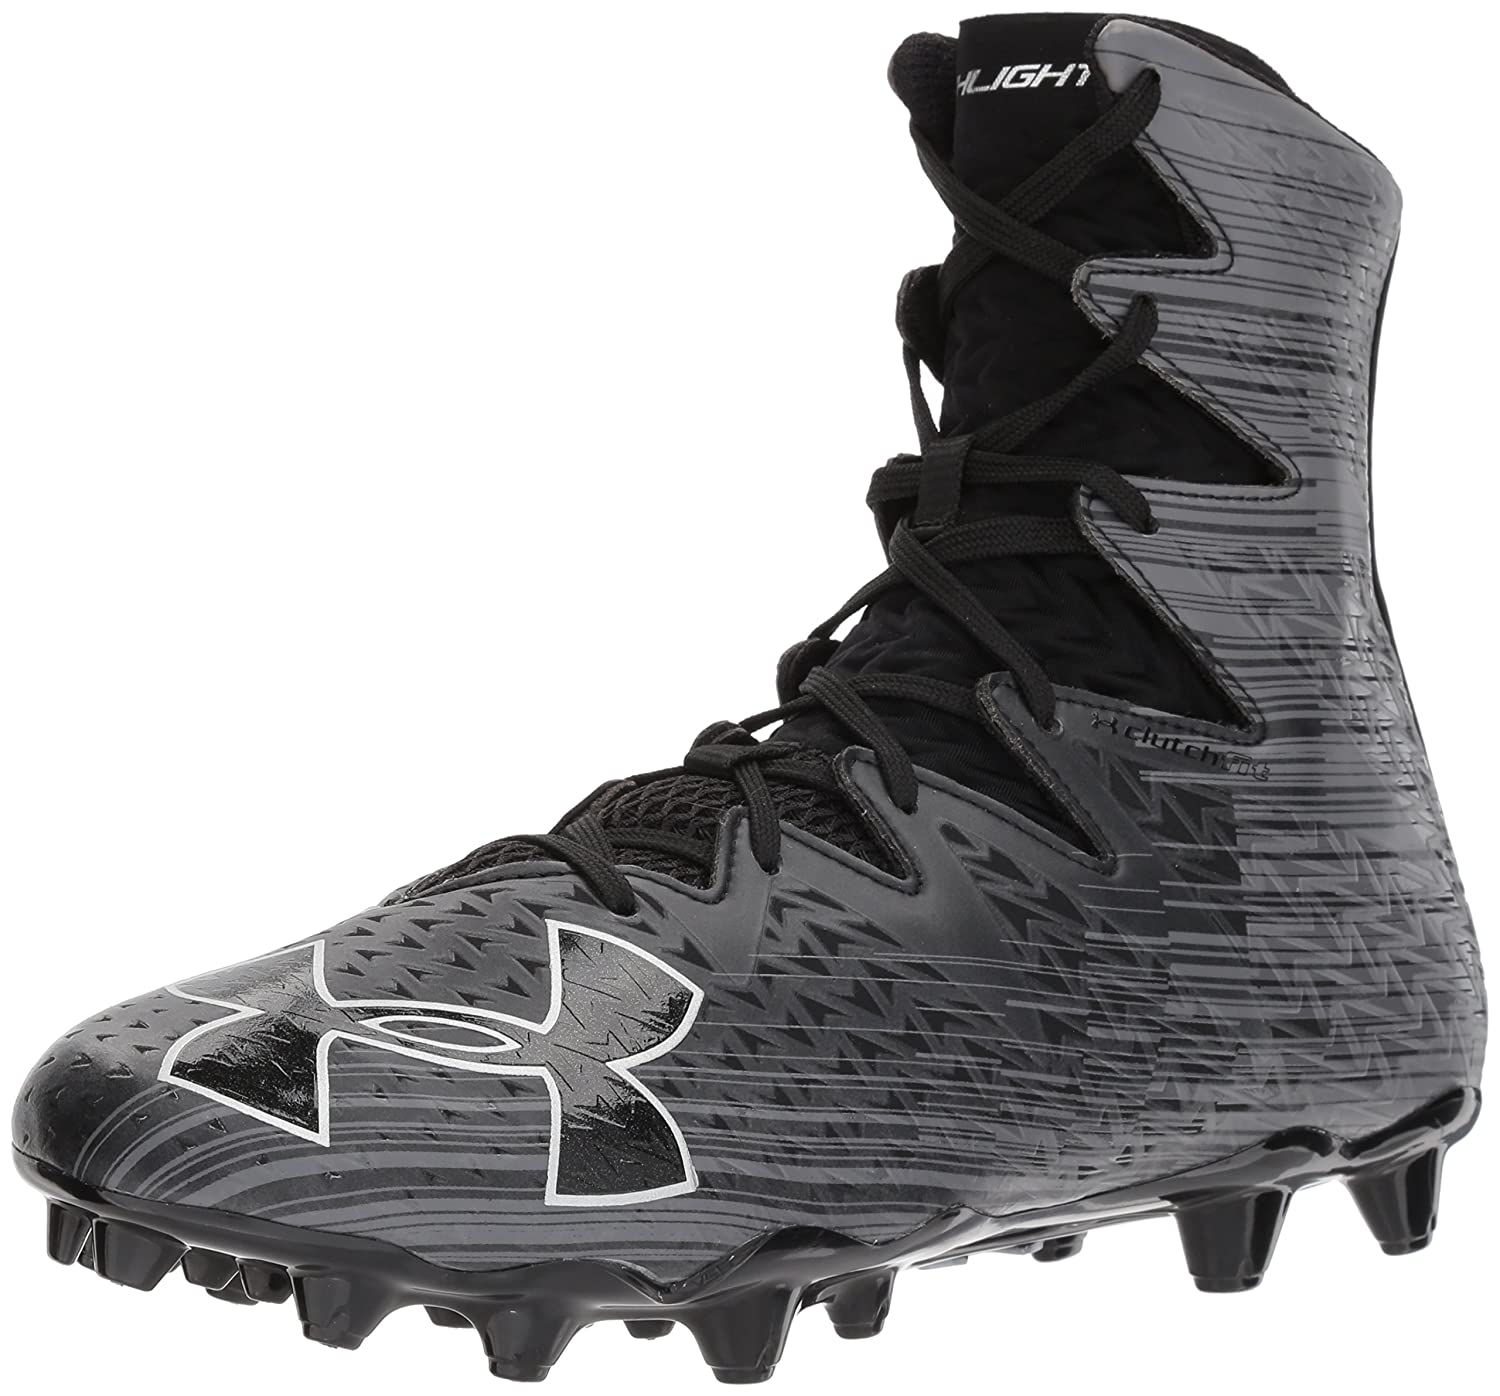 Under Armour Men's Highlight M.C. Lacrosse Shoe B06XKGR7RX 9 M US|Black (001)/Metallic Silver